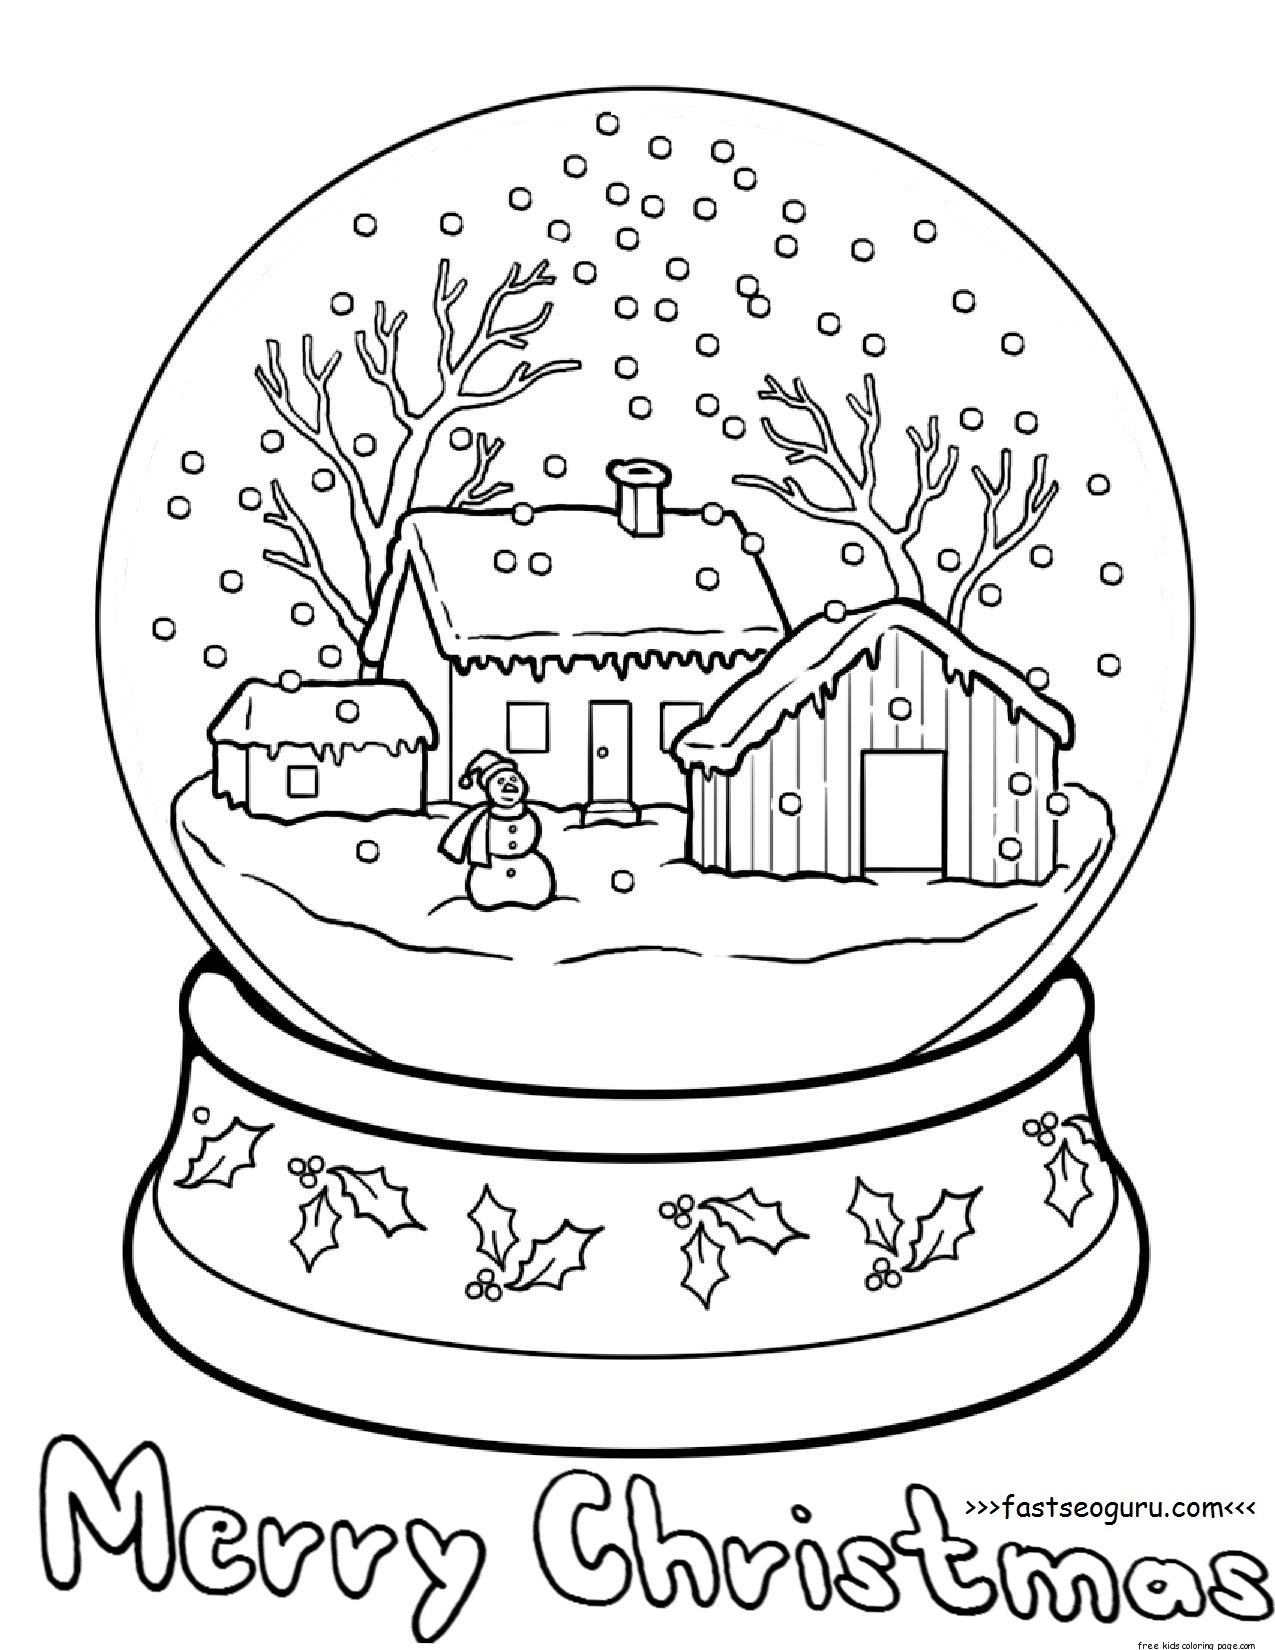 Printble christmas snow globe coloring